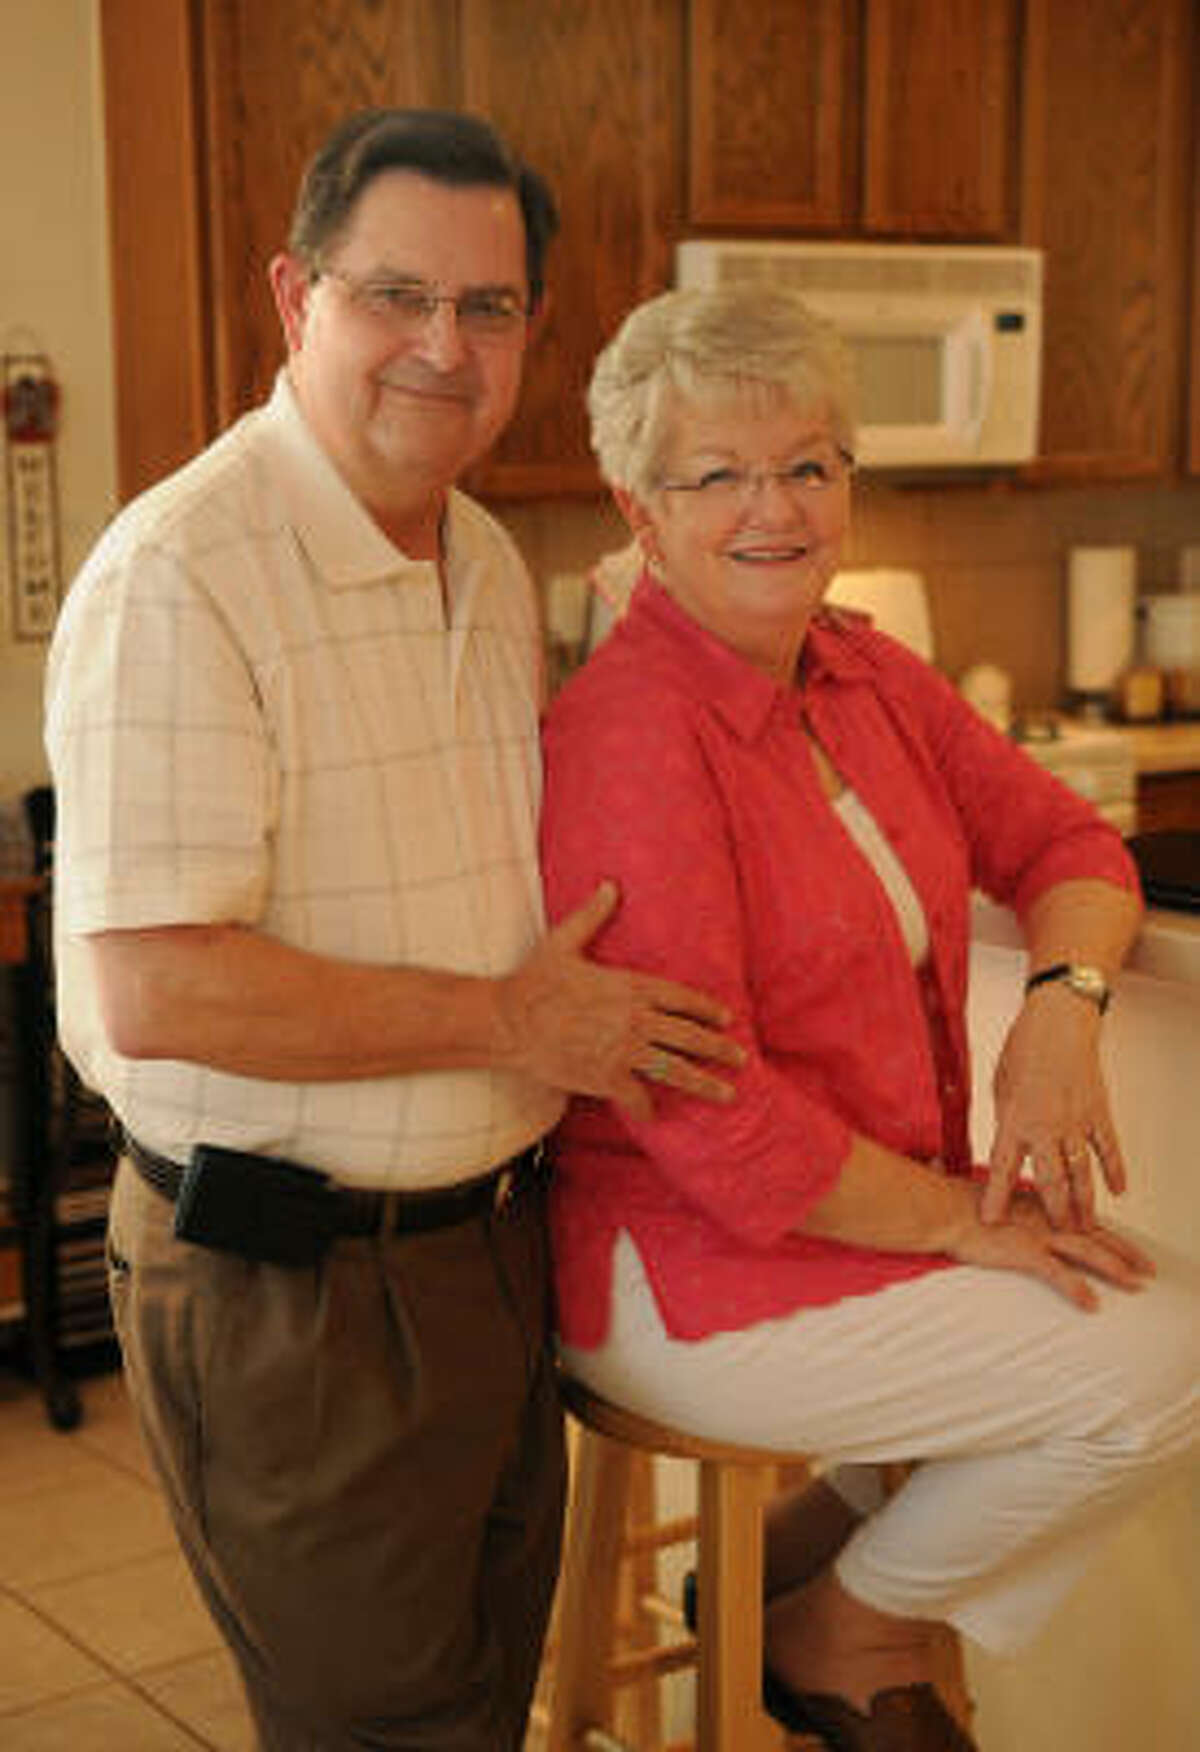 James Eby and his wife, Peggy, of Conroe, turned to a health care sharing ministry to pay the $25,000 bill for her heart surgery last year instead of using an insurance company.